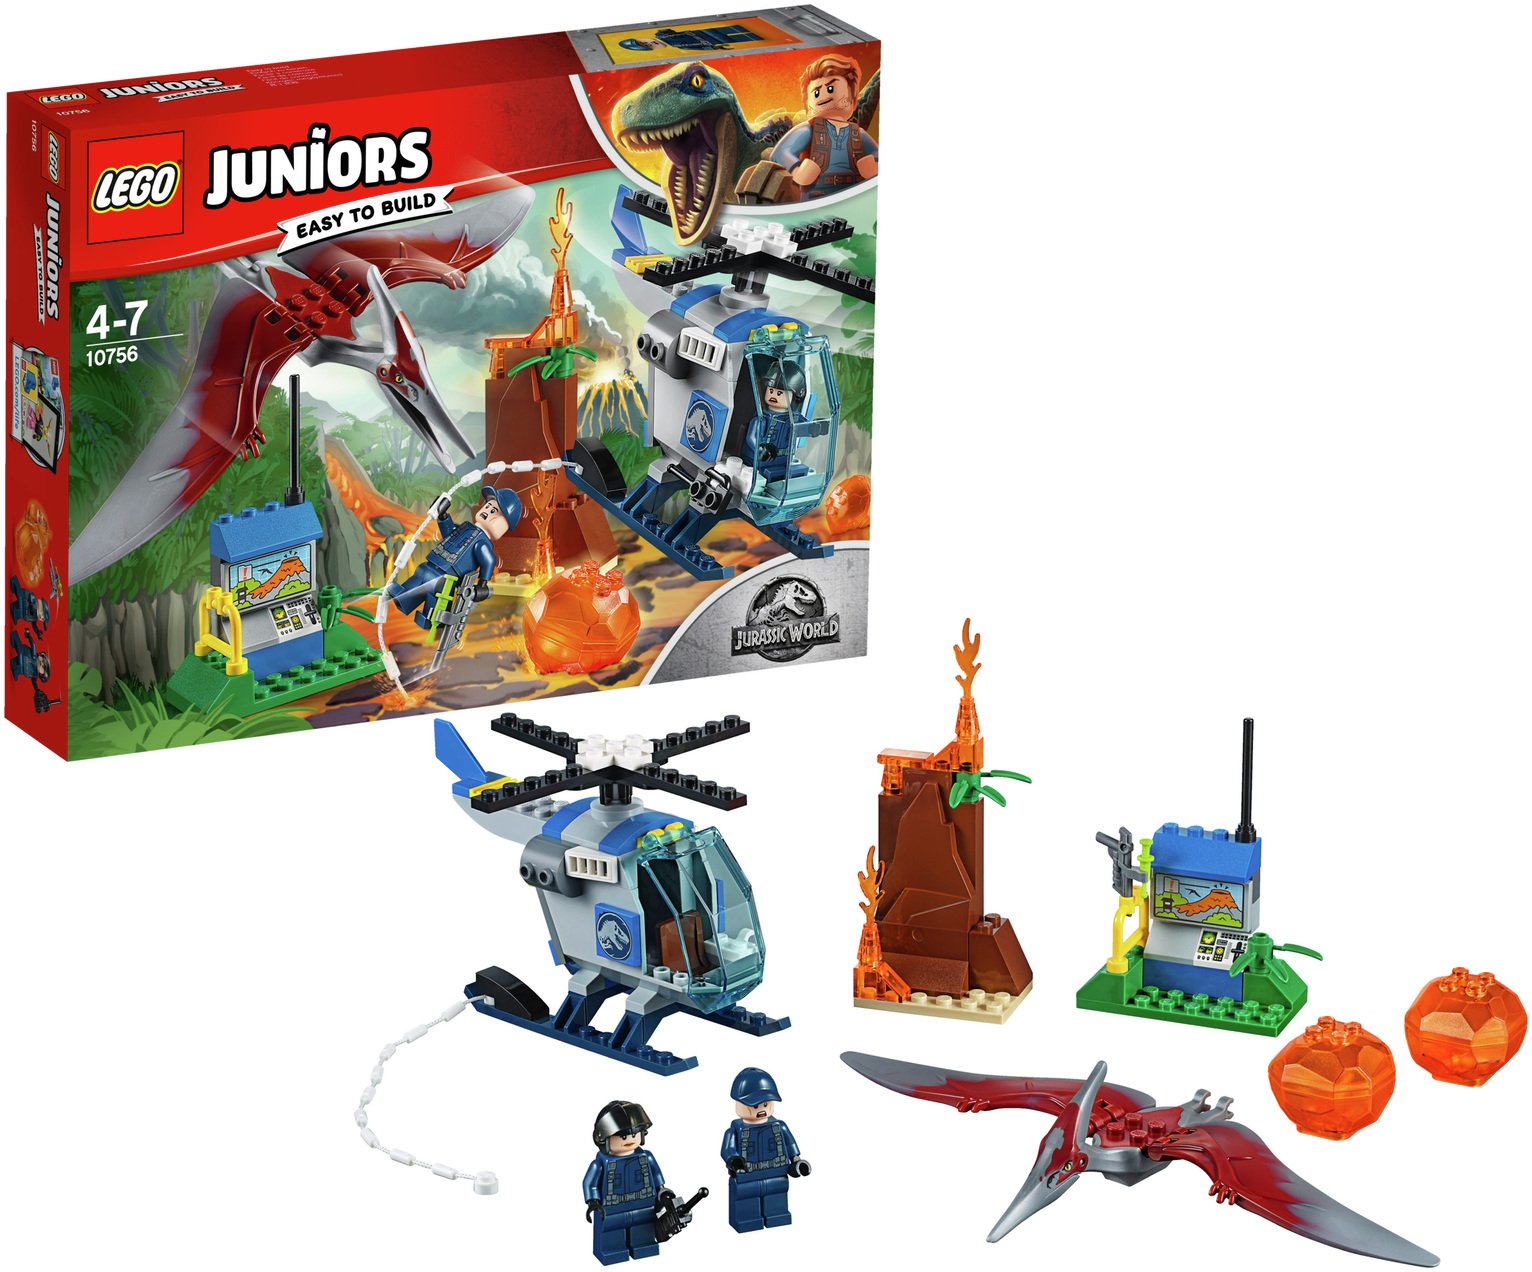 LEGO Juniors Pteranadon Escape Set - 10756